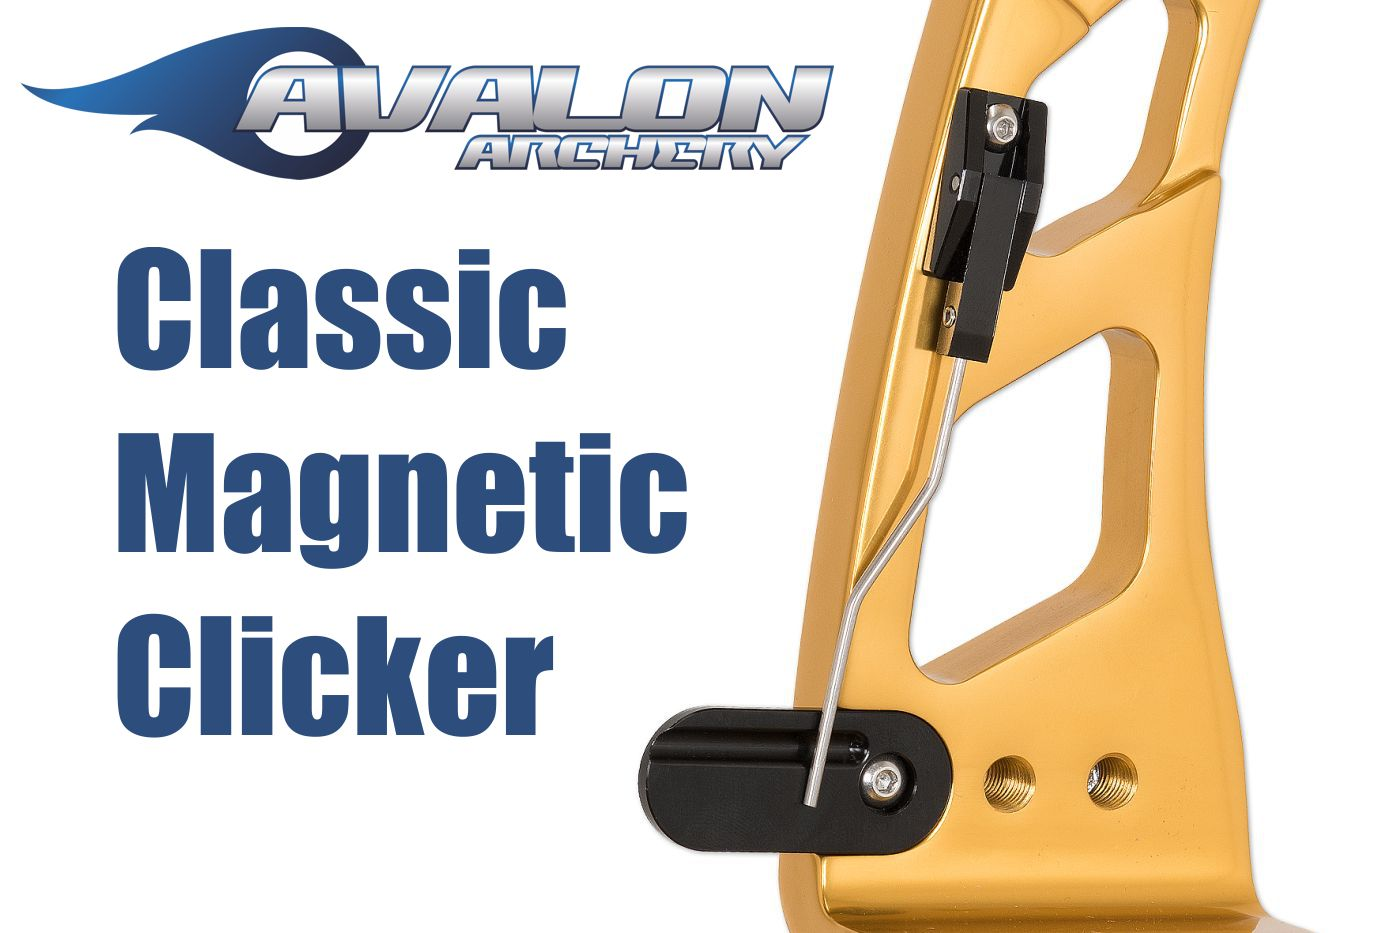 Avalon Classic Magnetic Clicker